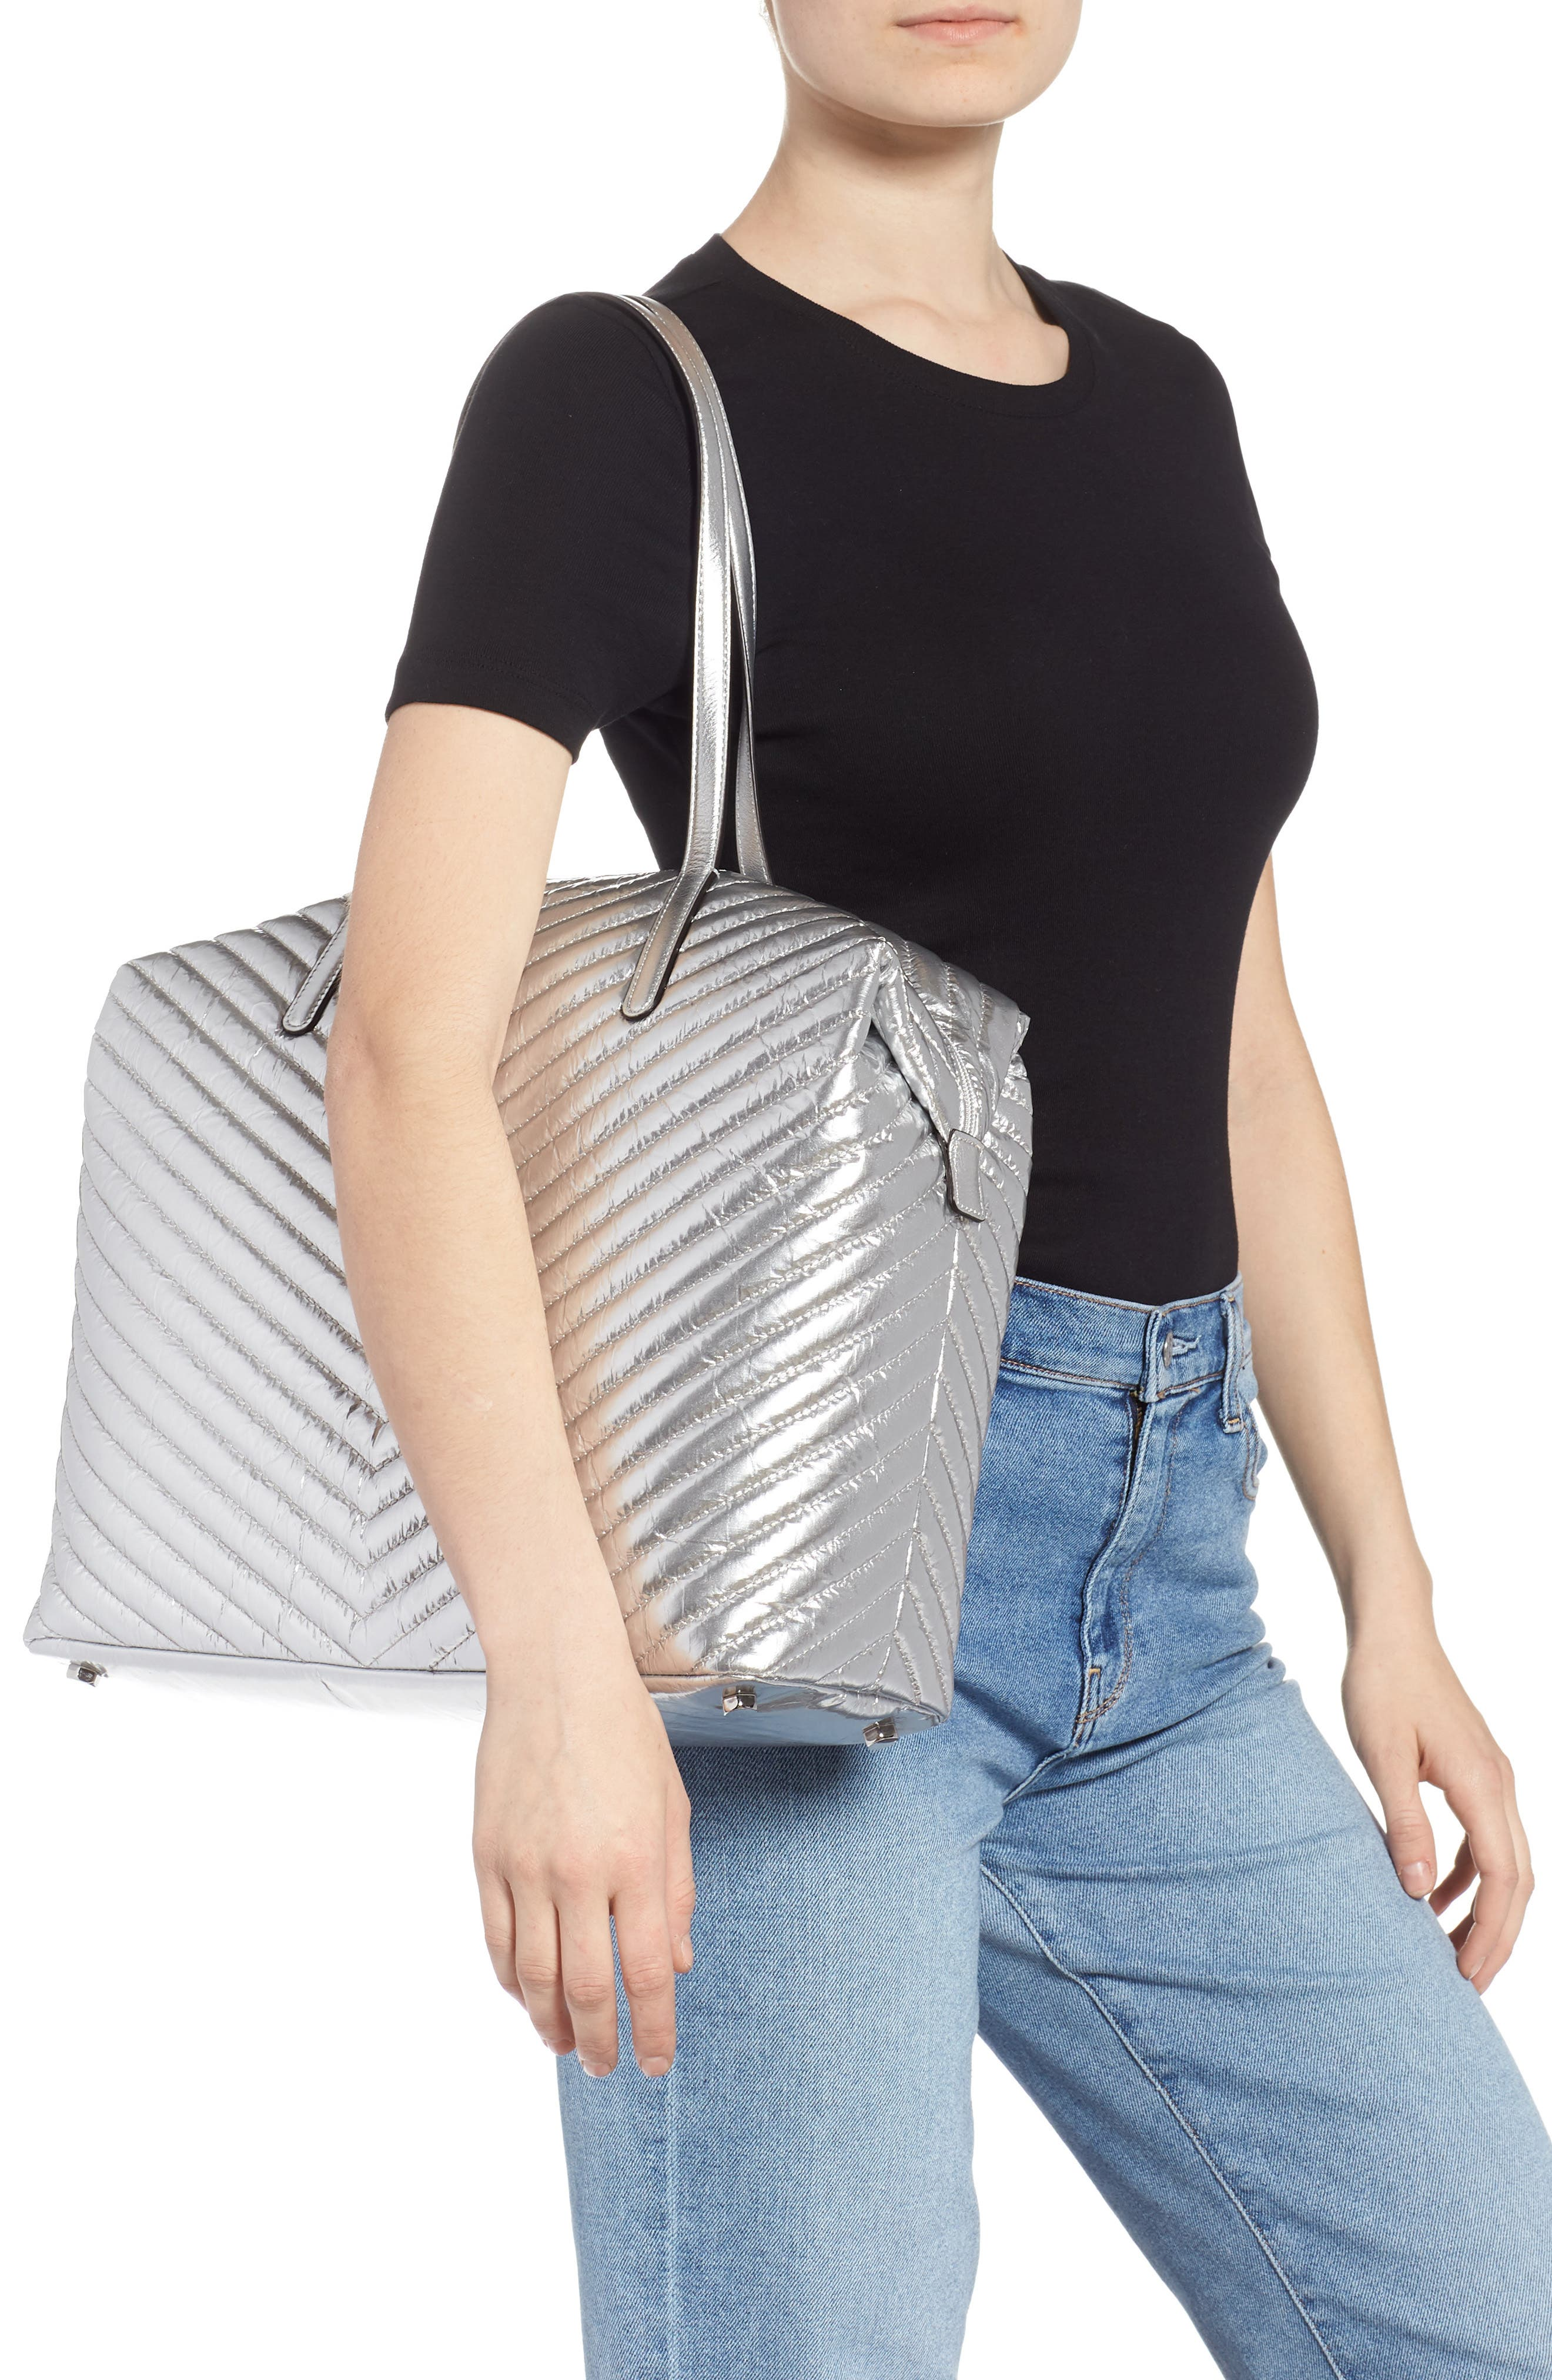 REBECCA MINKOFF, Quilted Nylon Tote, Alternate thumbnail 2, color, 040